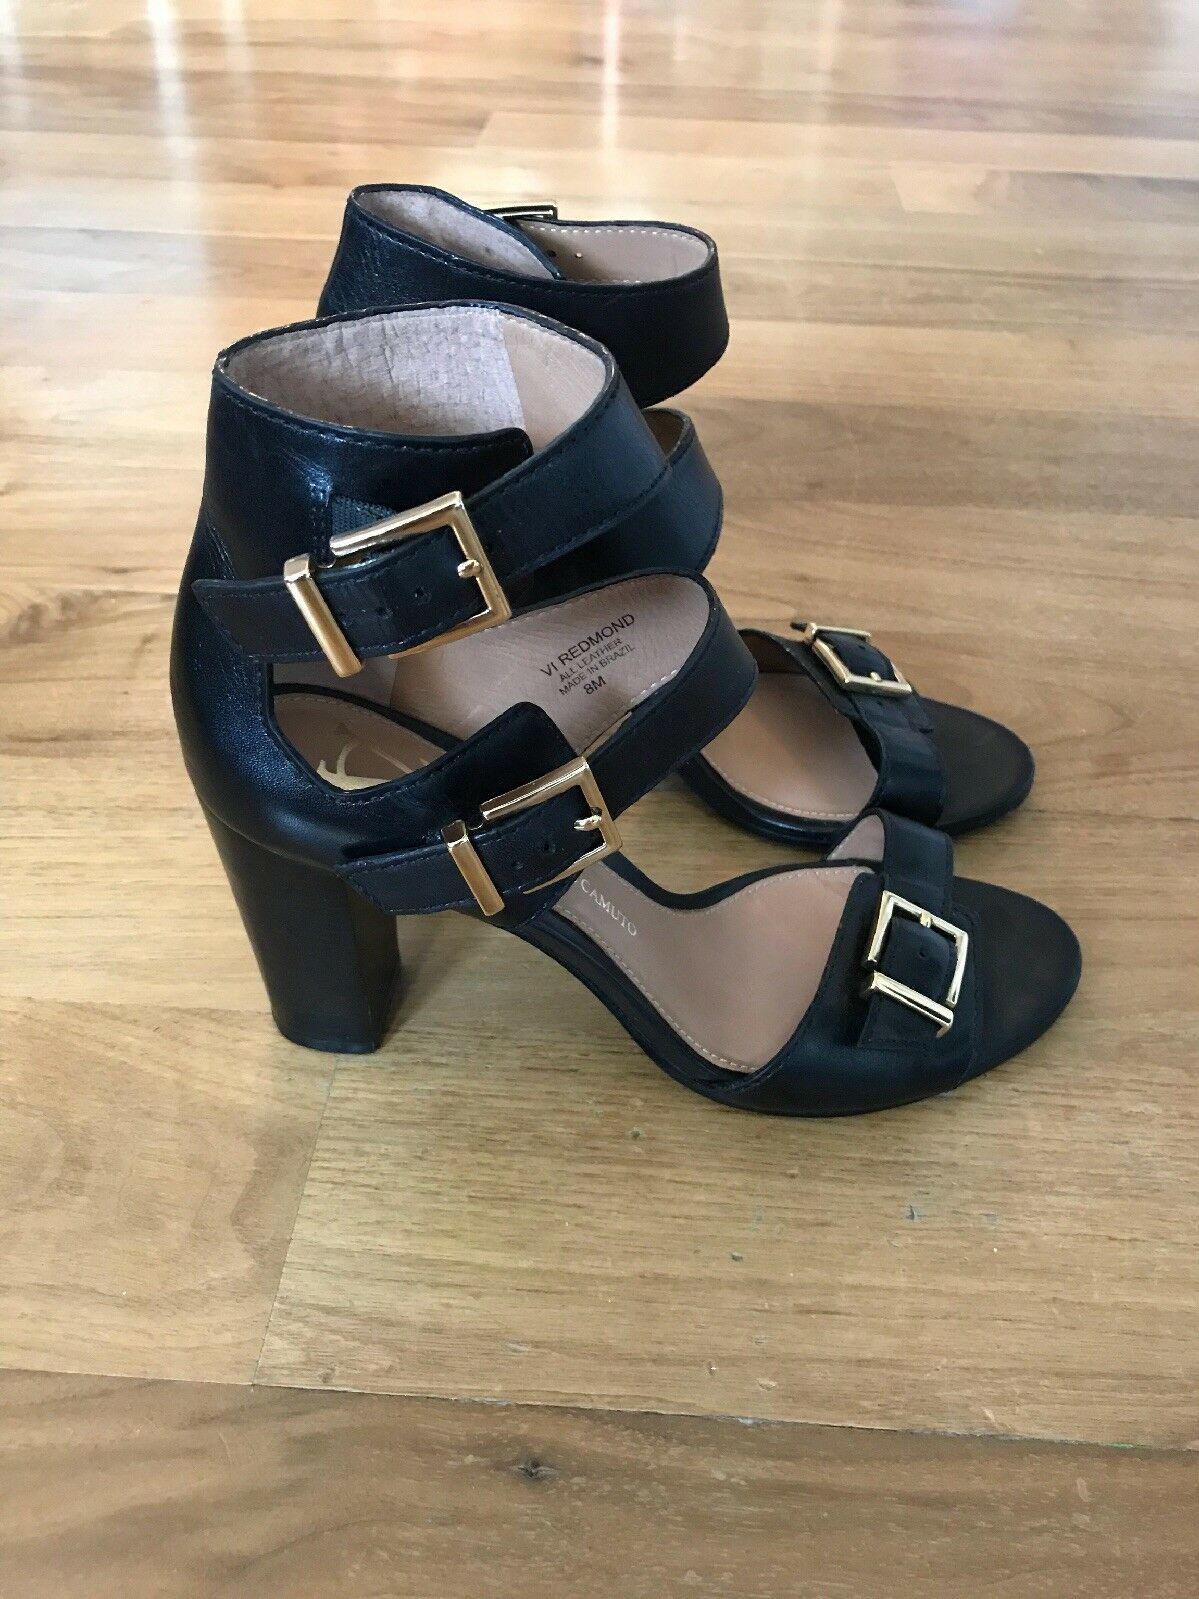 Vince camuto schuhe schuhe camuto Größe 8 worn only once eef45d